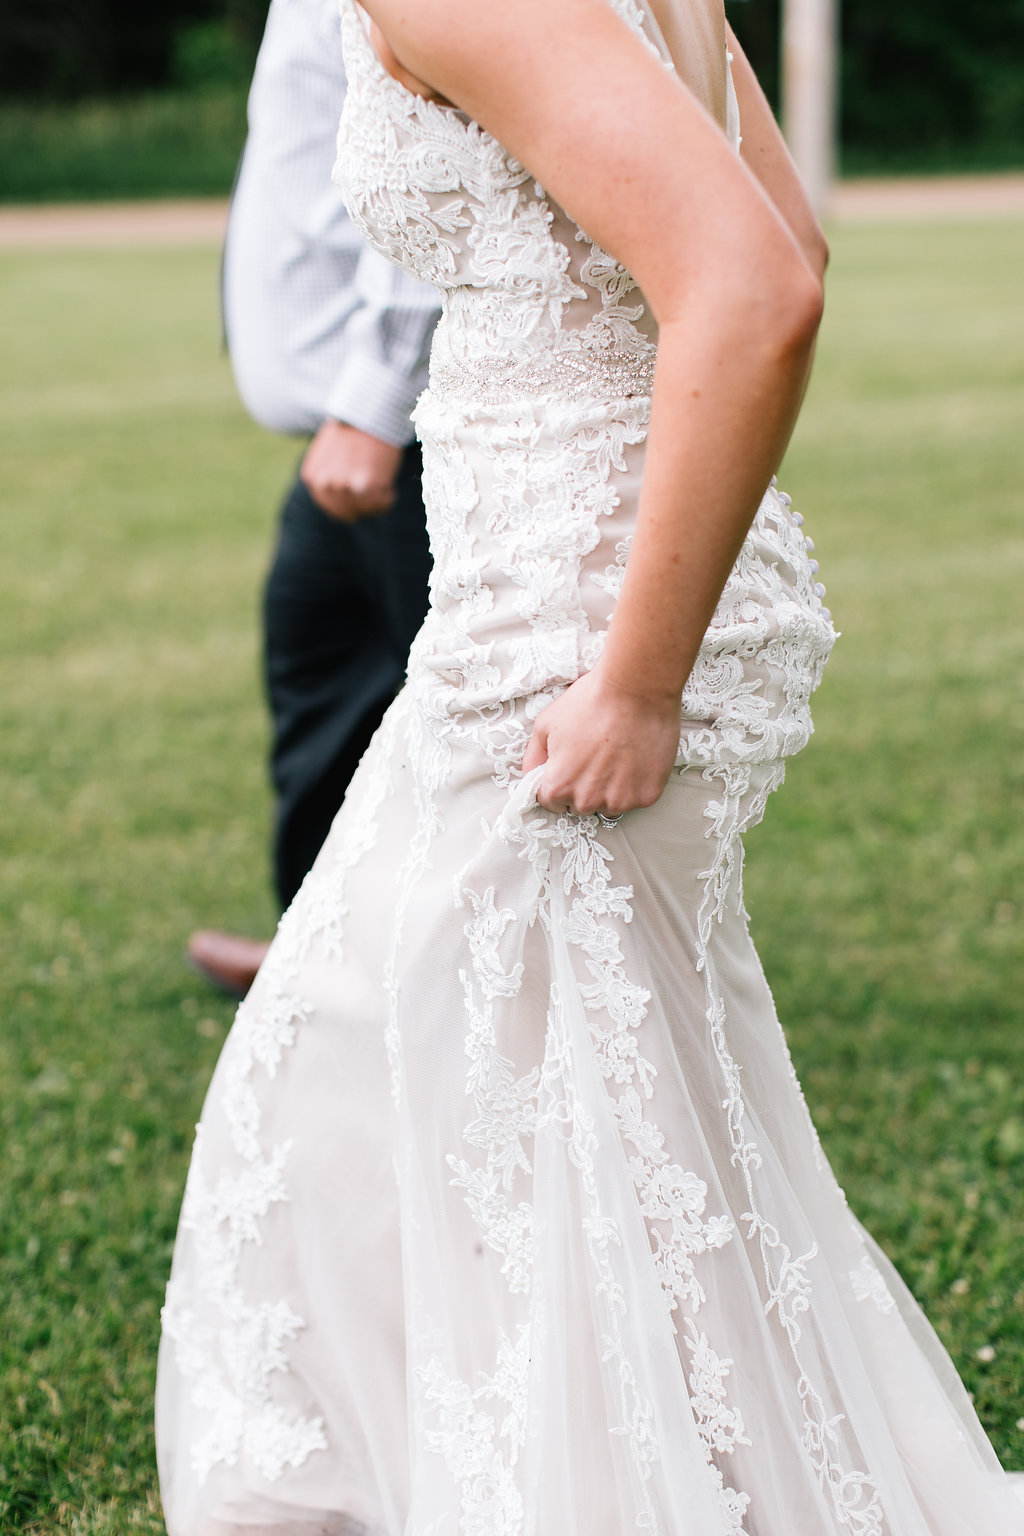 Jade + Seth Wedding | Allison Hopperstad Photography | Bloom Lake Barn | walking to the first look | bride in lace wedding dress with straps